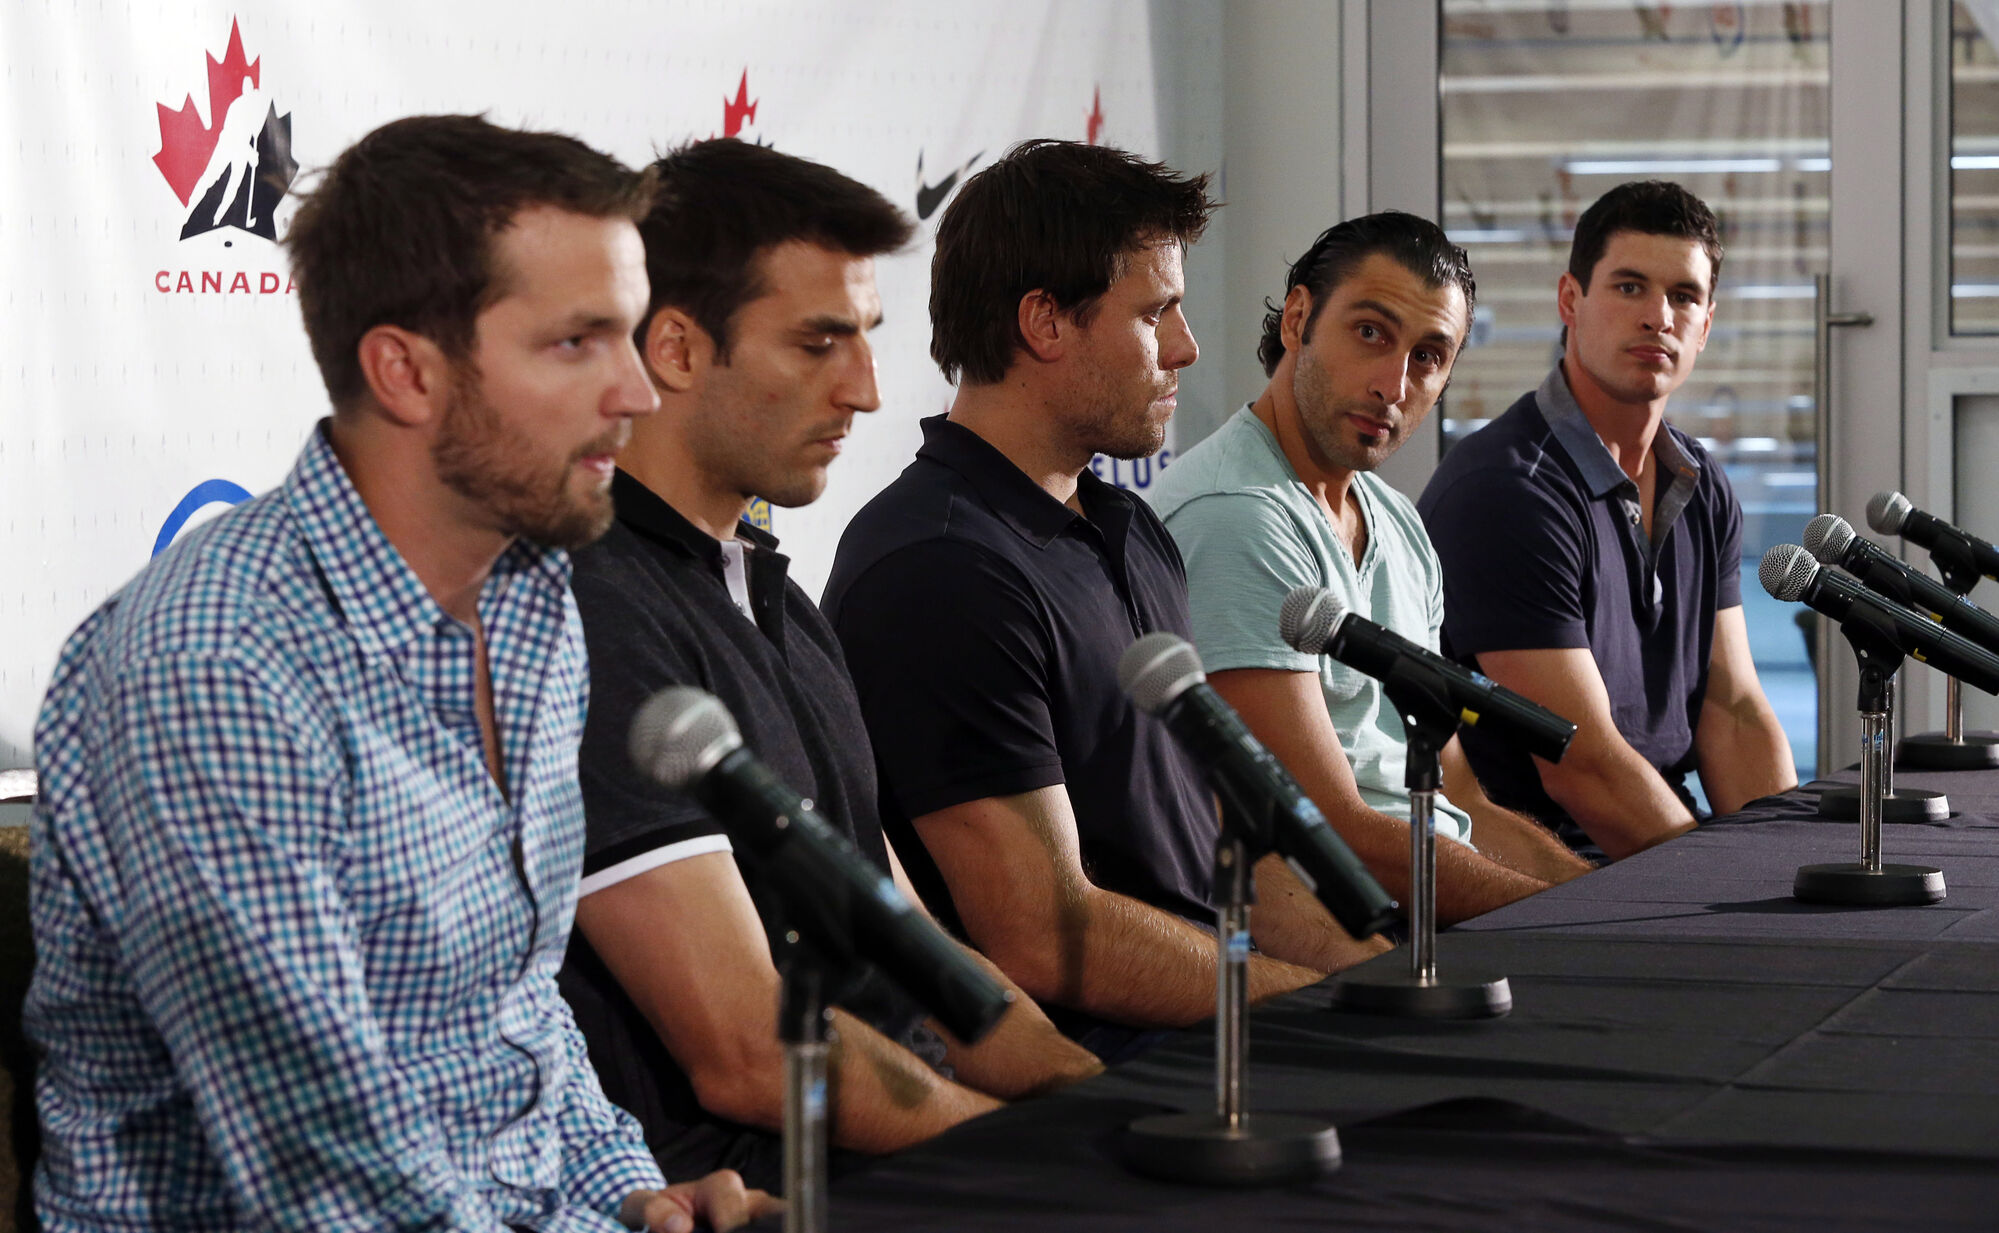 Rick Nash, Patrice Bergeron, Shea Weber, Roberto Luongo and Sidney Crosby address the media at a team orientation camp in Calgary on Sunday.